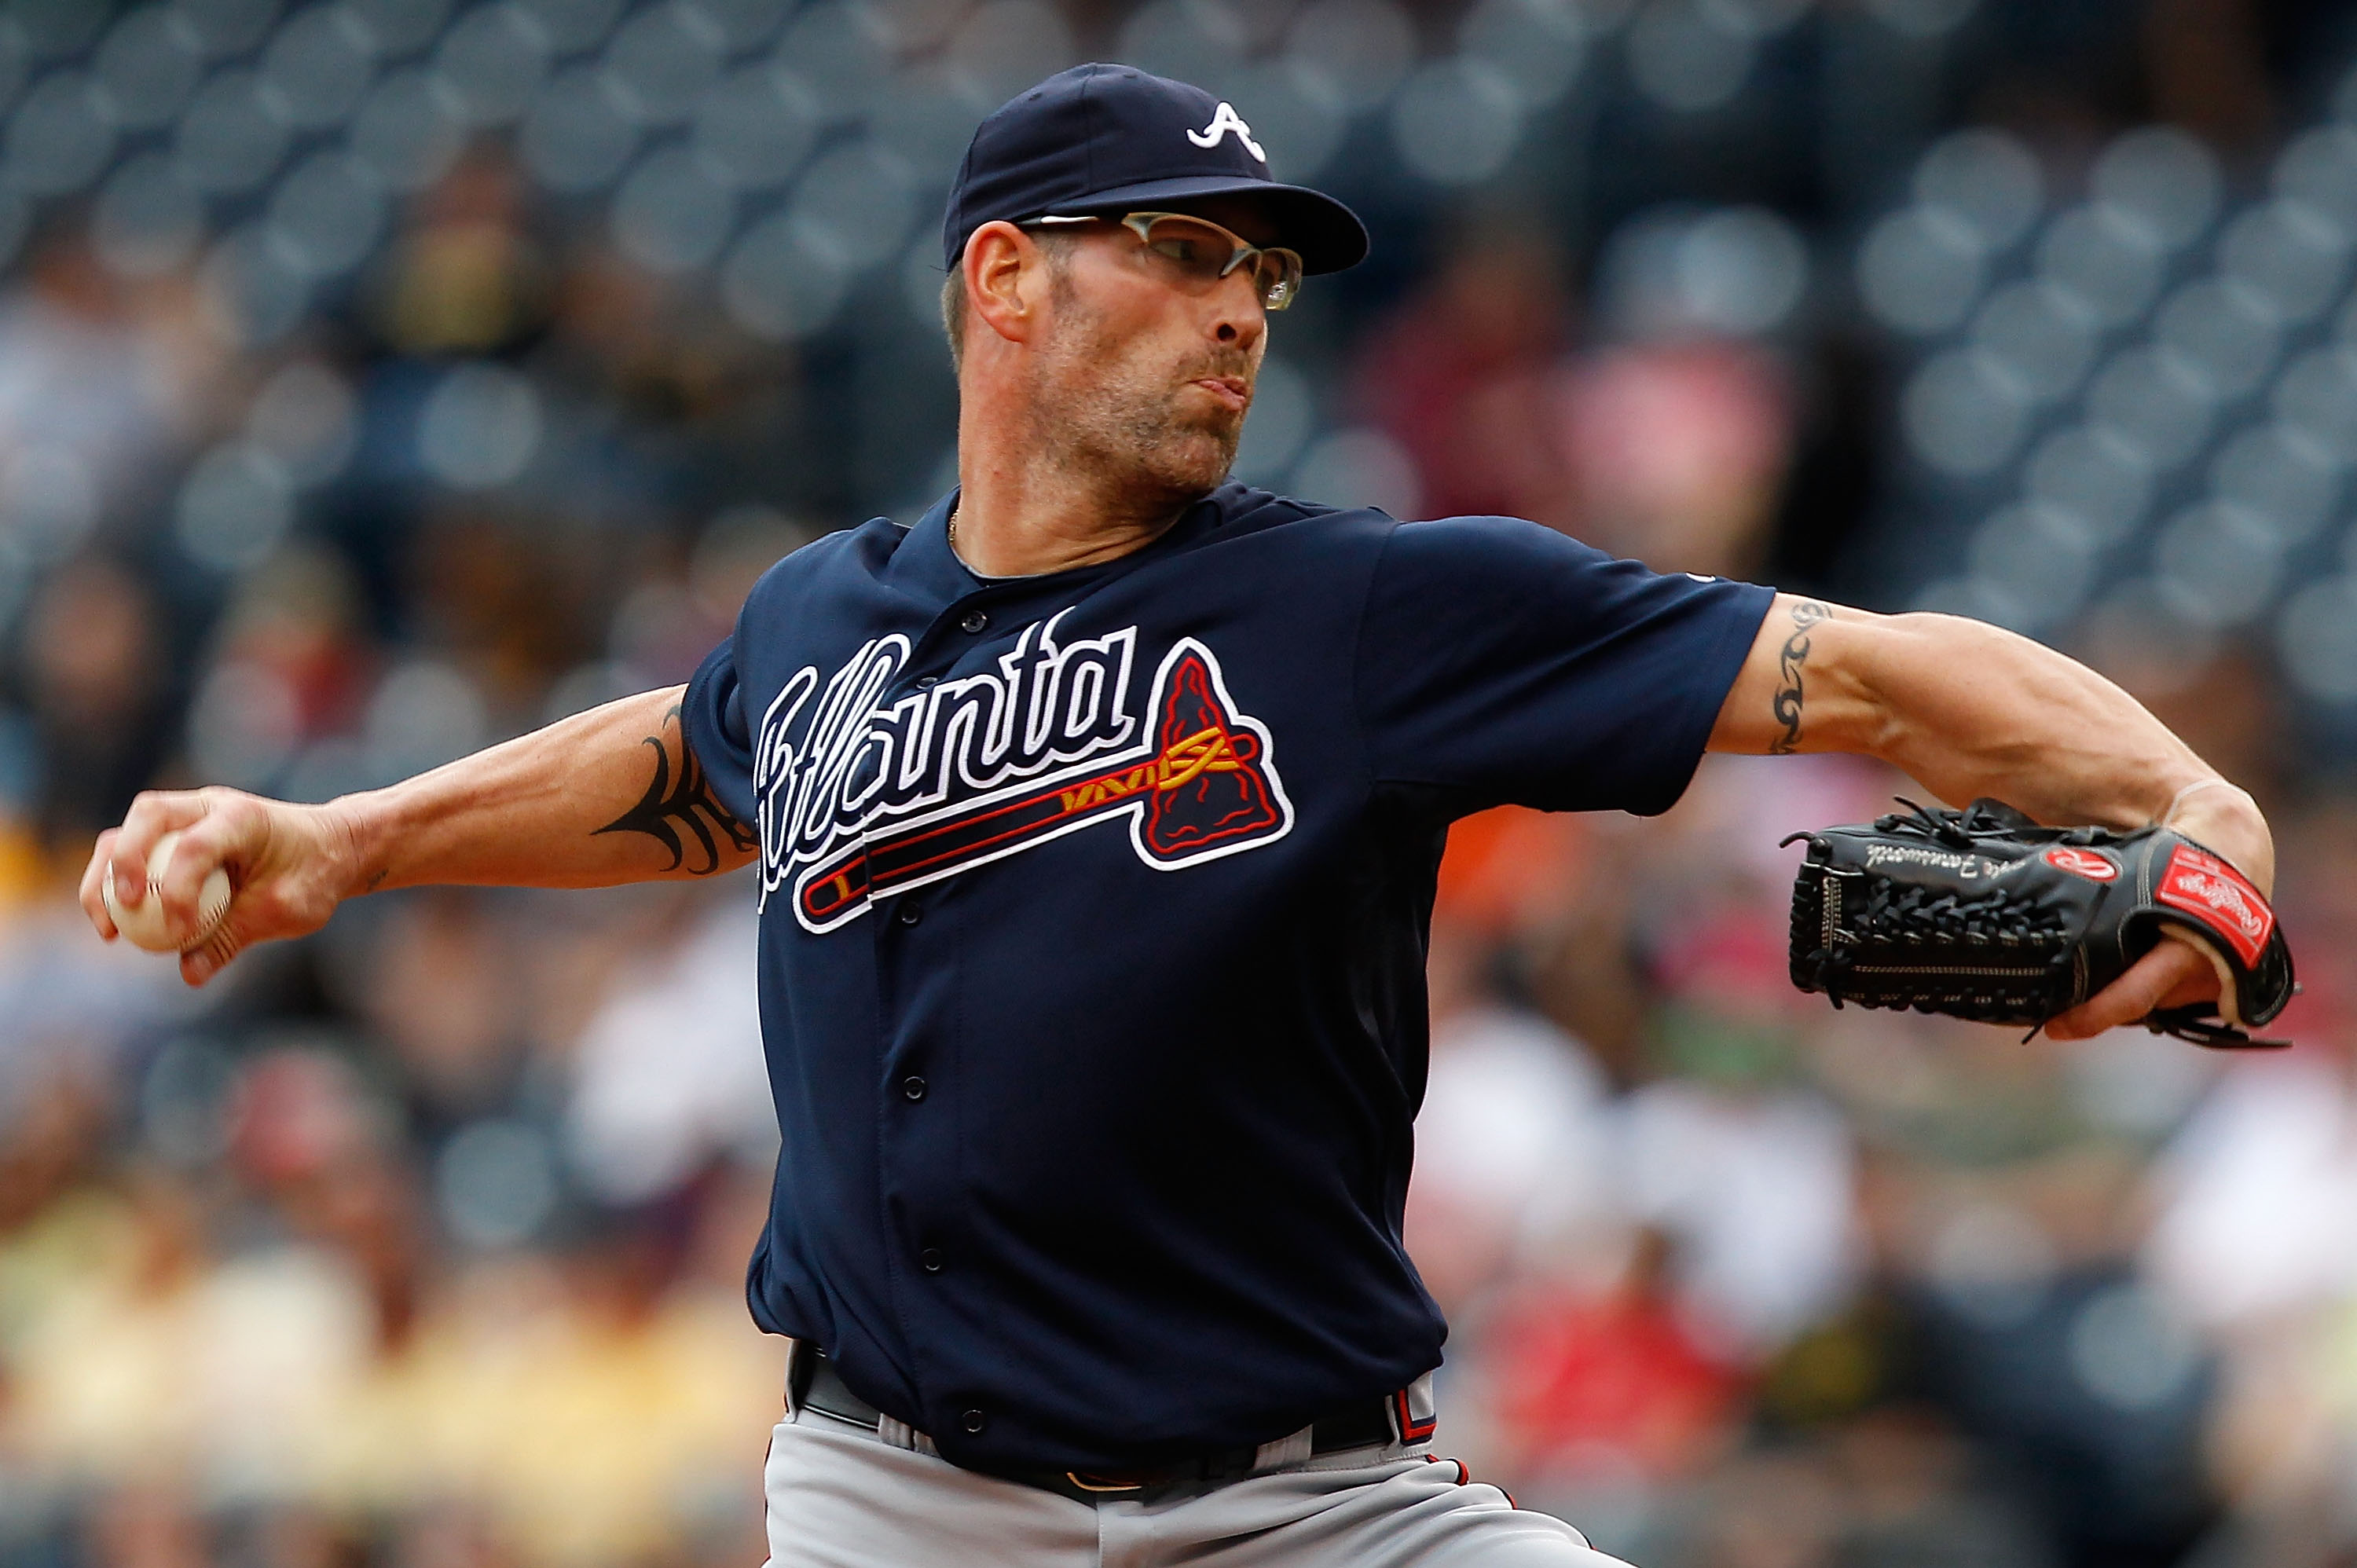 PITTSBURGH - SEPTEMBER 06:  Kyle Farnsworth #43 of the Atlanta Braves pitches against the Pittsburgh Pirates during the game on September 6, 2010 at PNC Park in Pittsburgh, Pennsylvania. The Pirates beat the Braves 3-1.  (Photo by Jared Wickerham/Getty Im